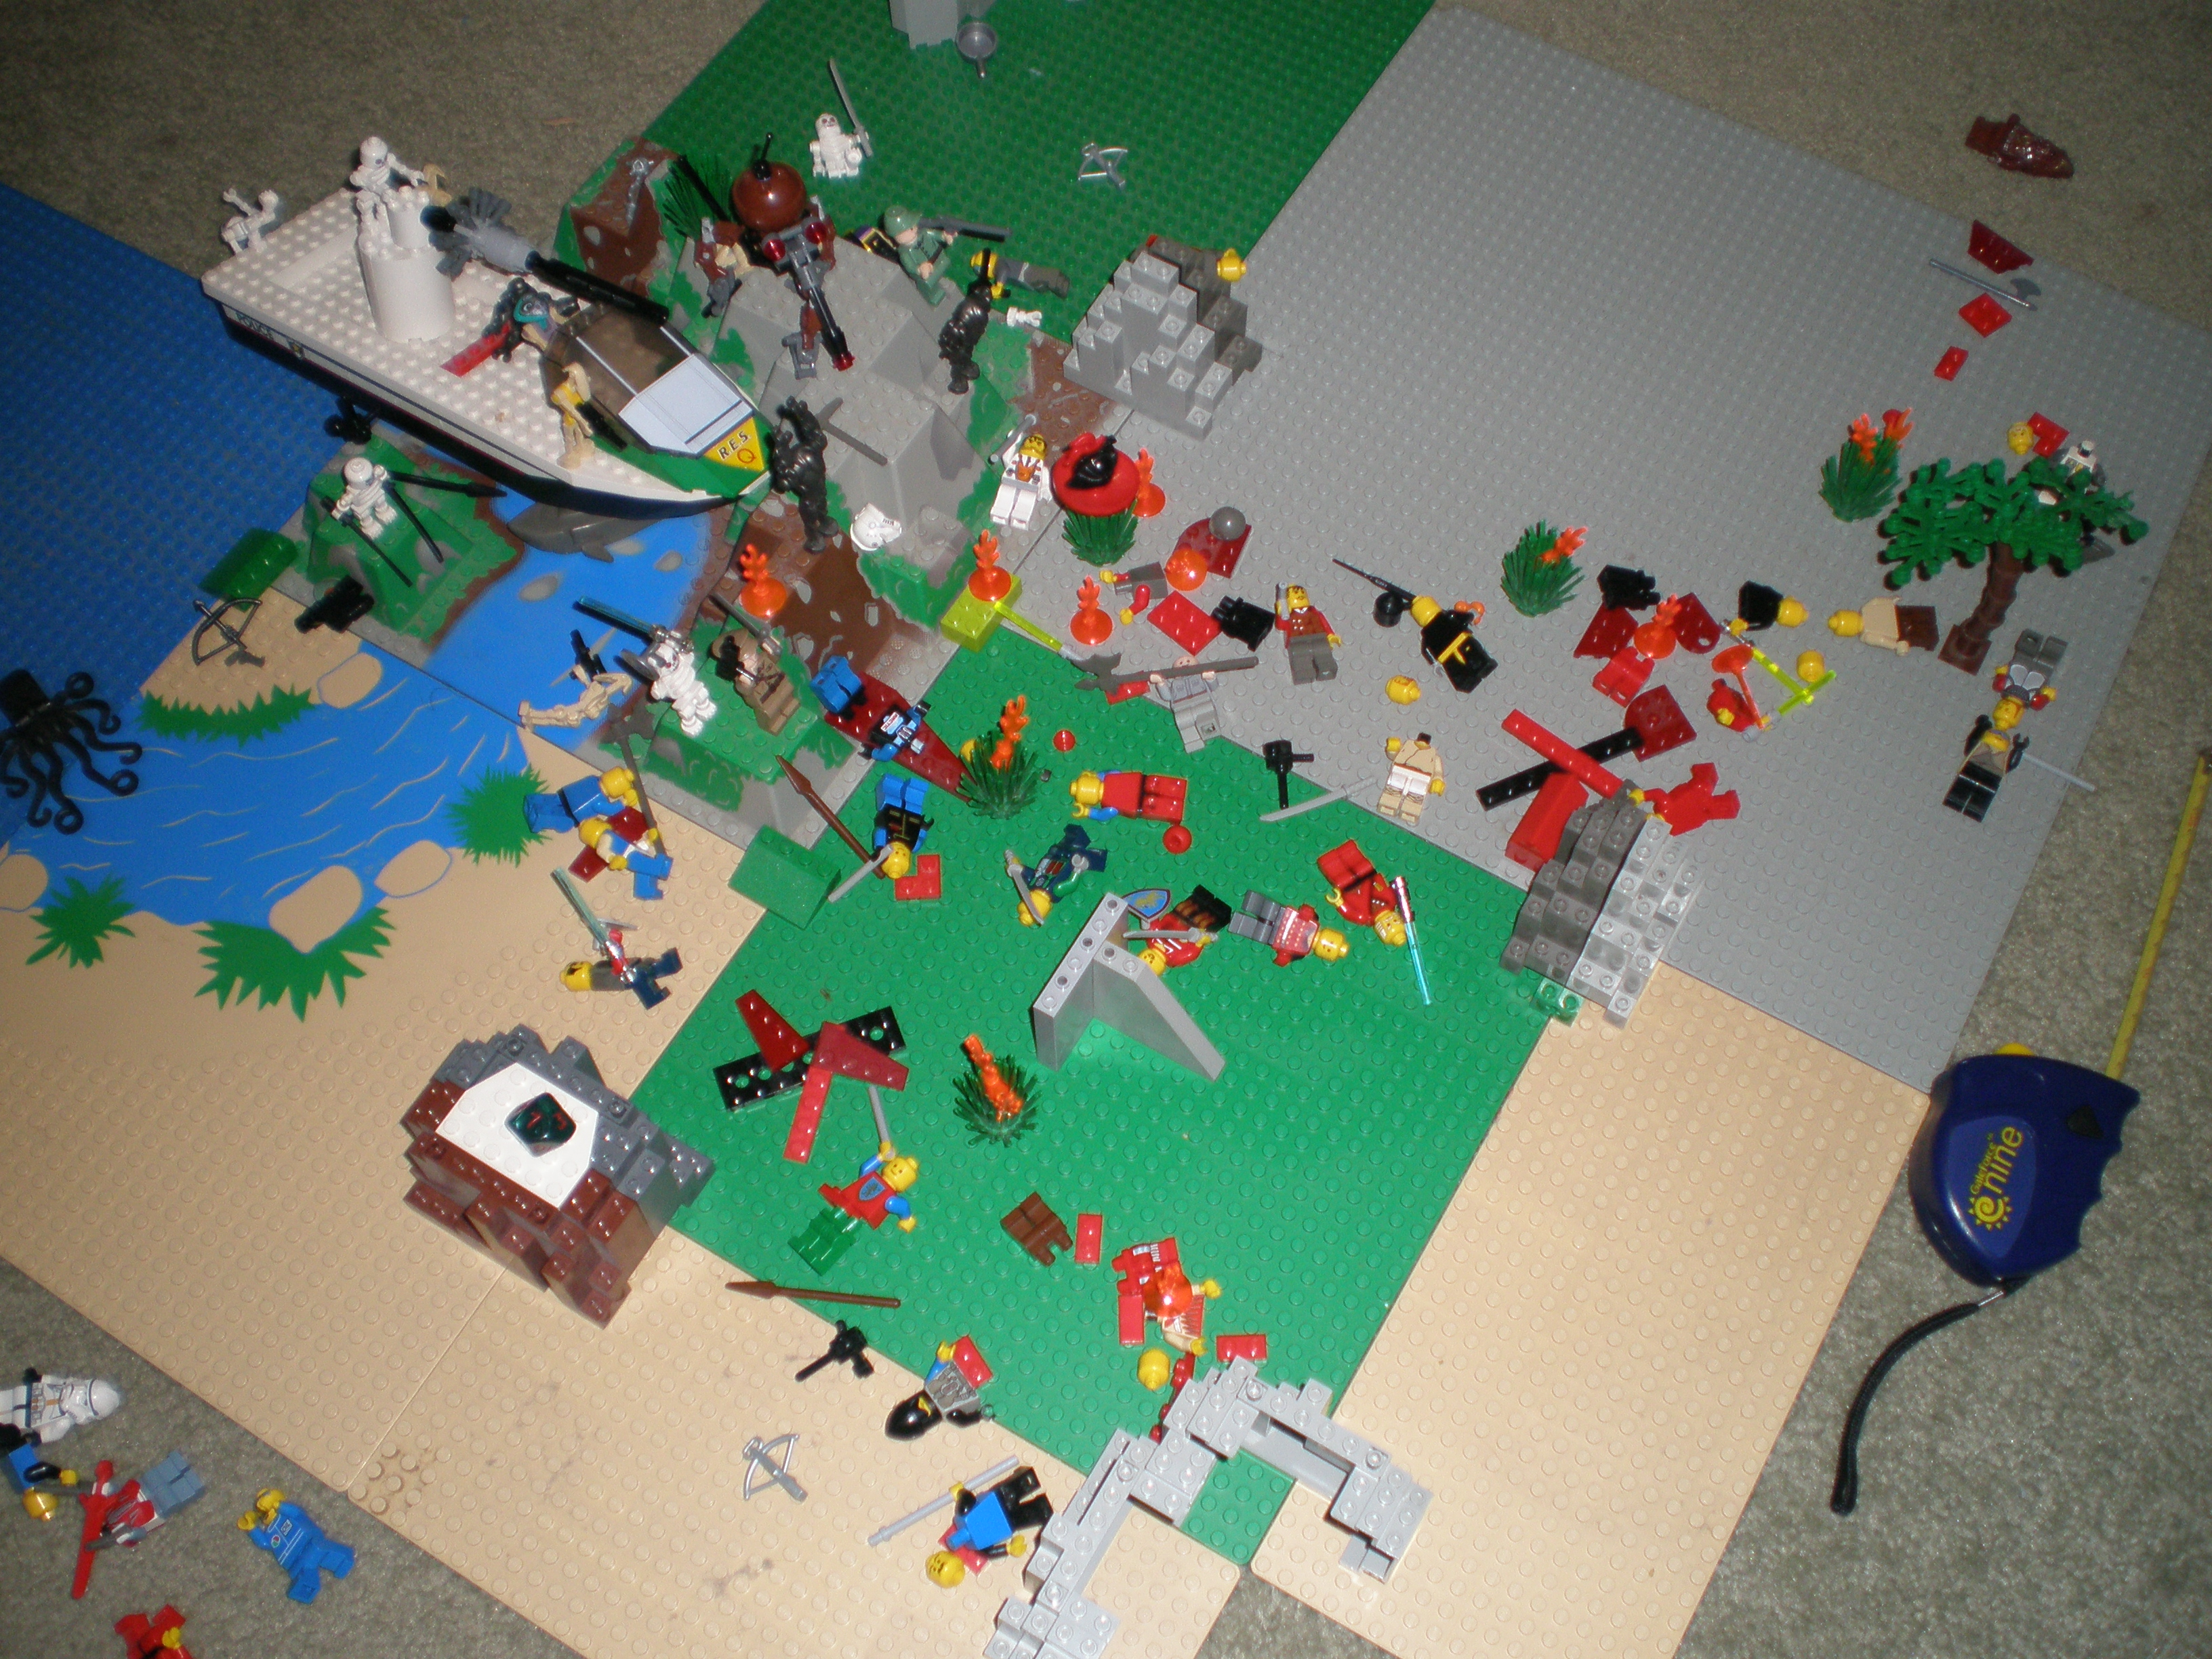 armagendon_lego_battle_017.jpg